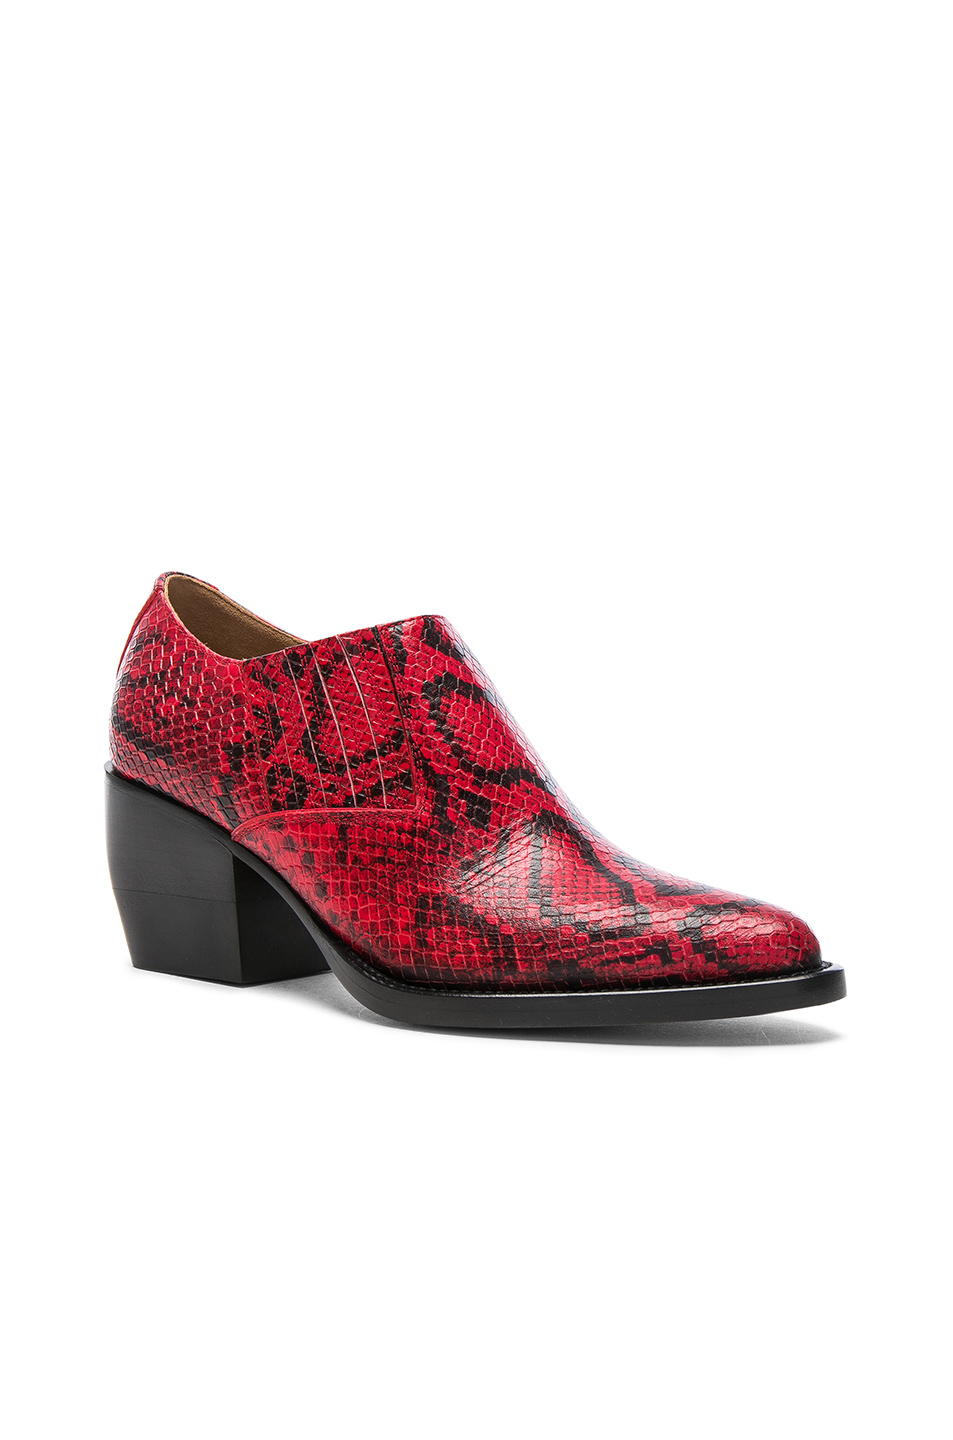 94b4b8d84a Rylee Python Print Leather Ankle Boots, Chloe